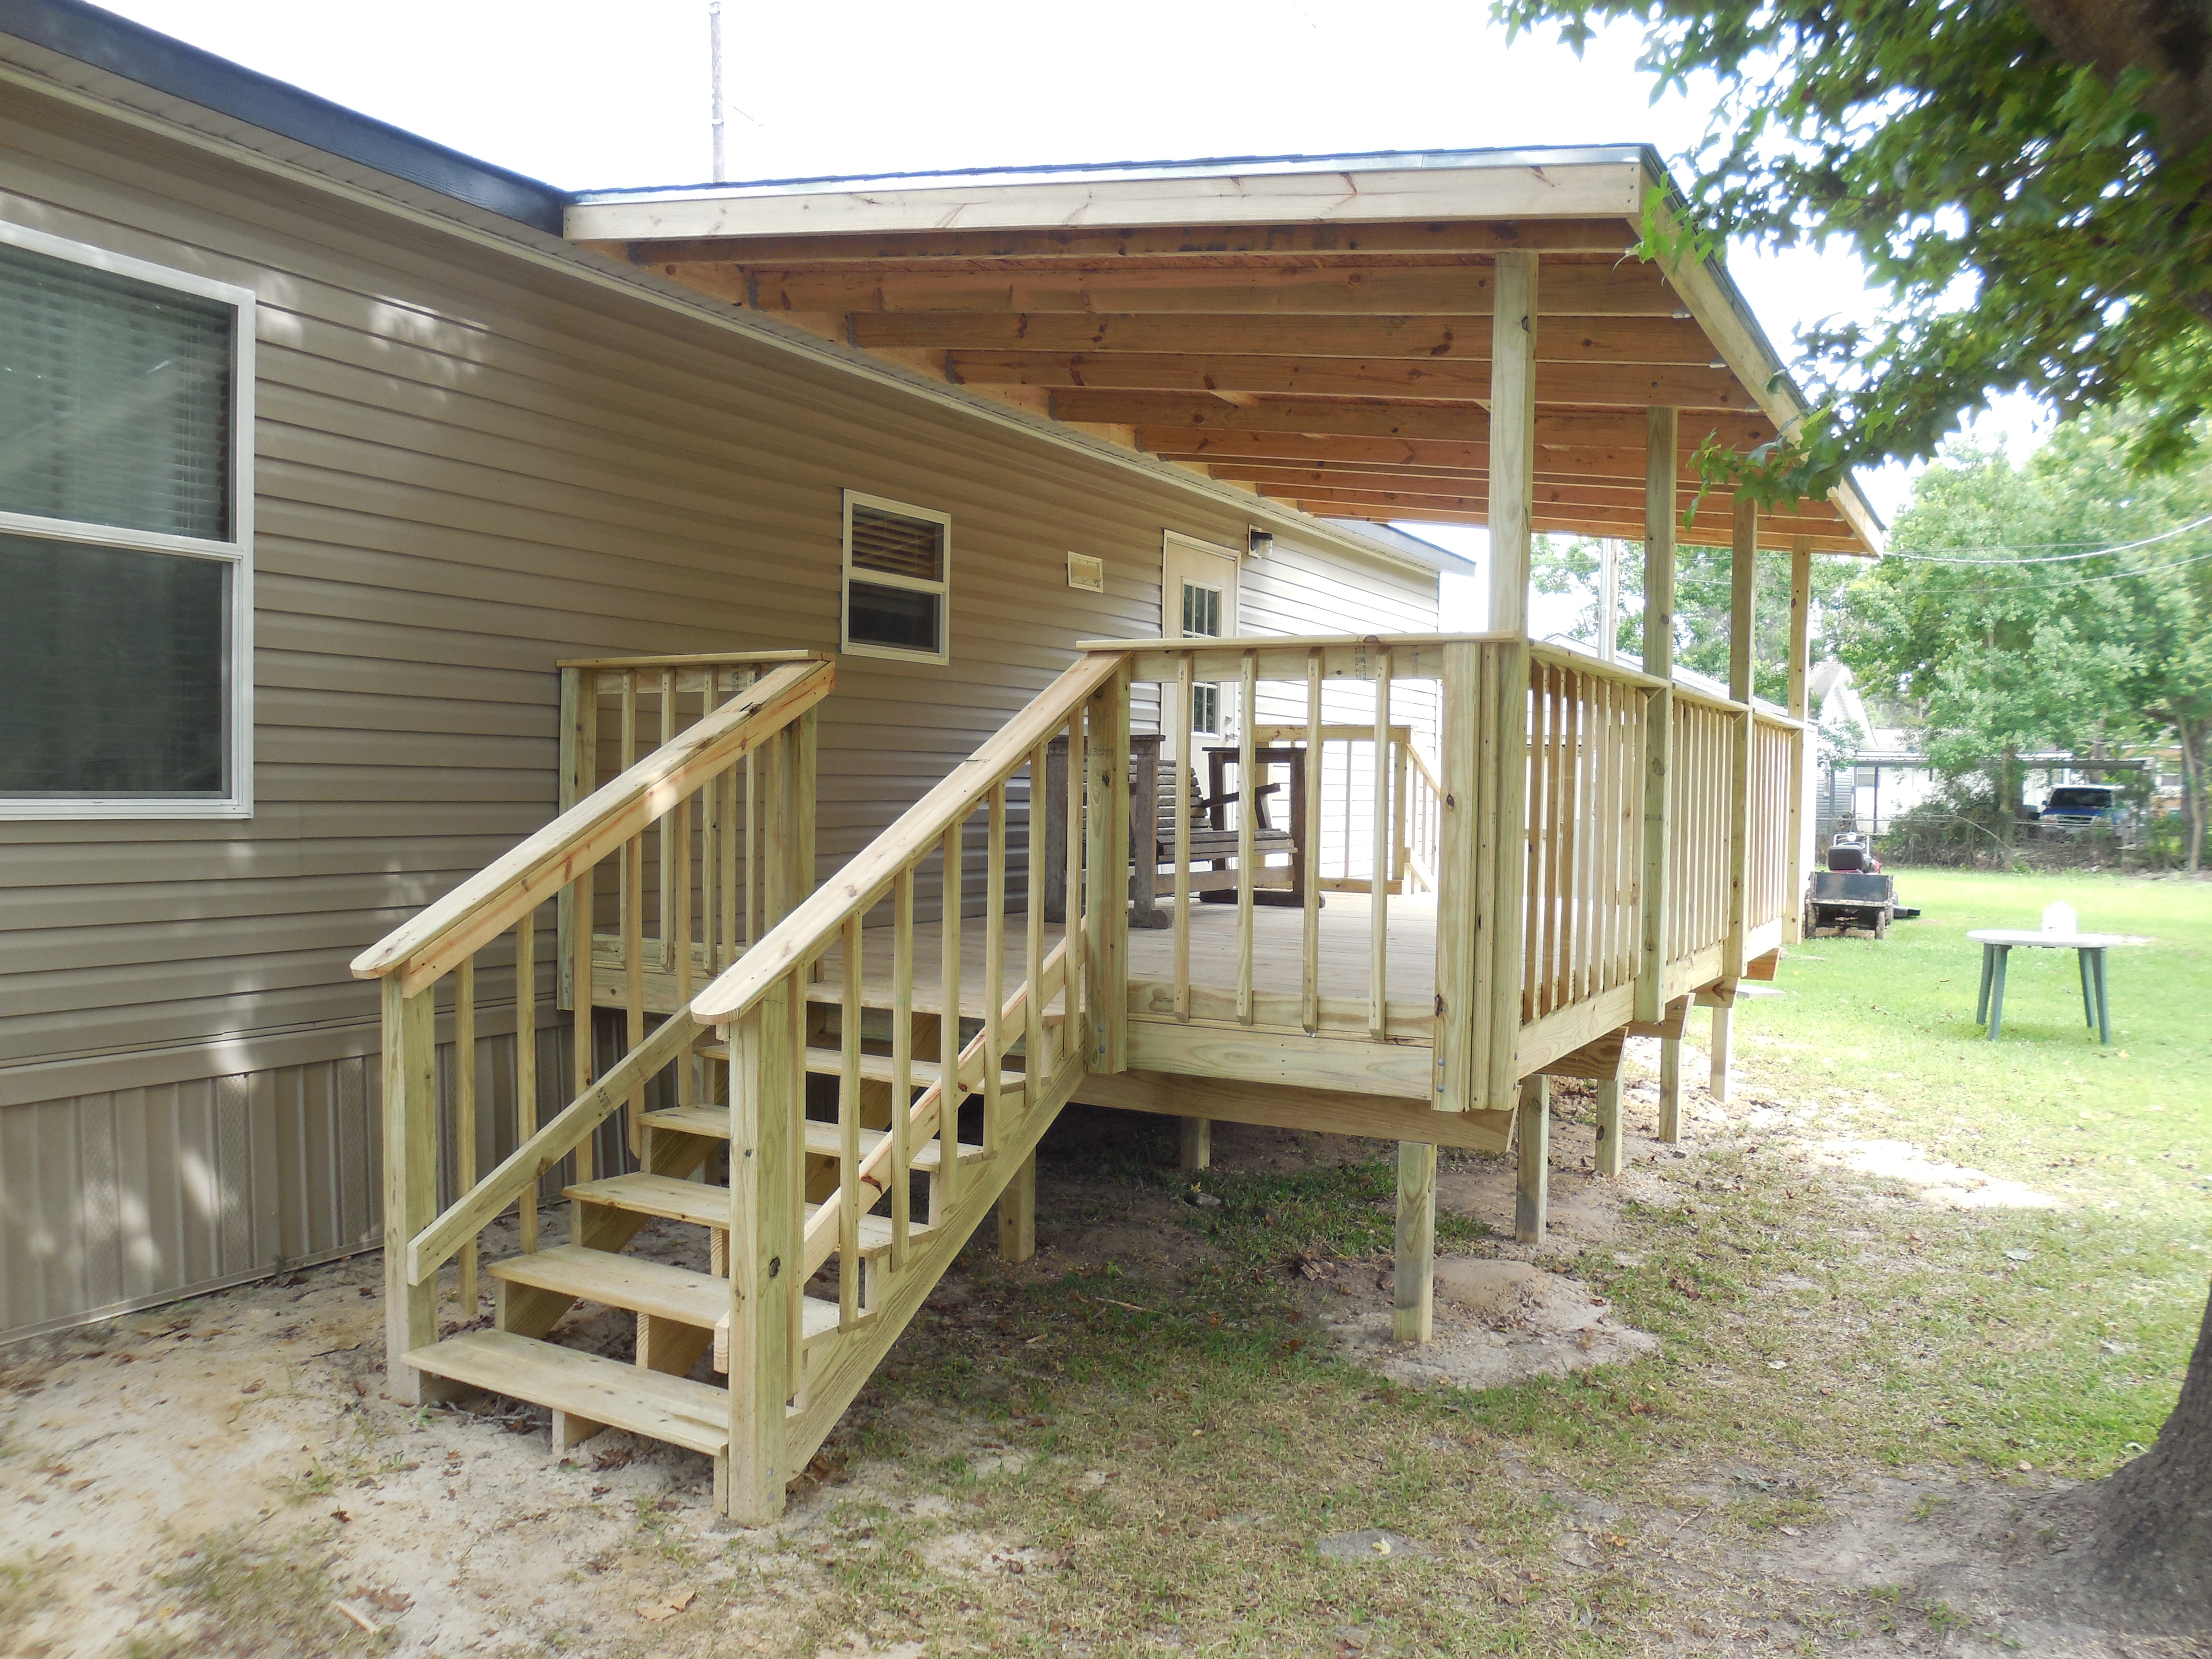 Raised Deck (Stairs and Hand Rails)